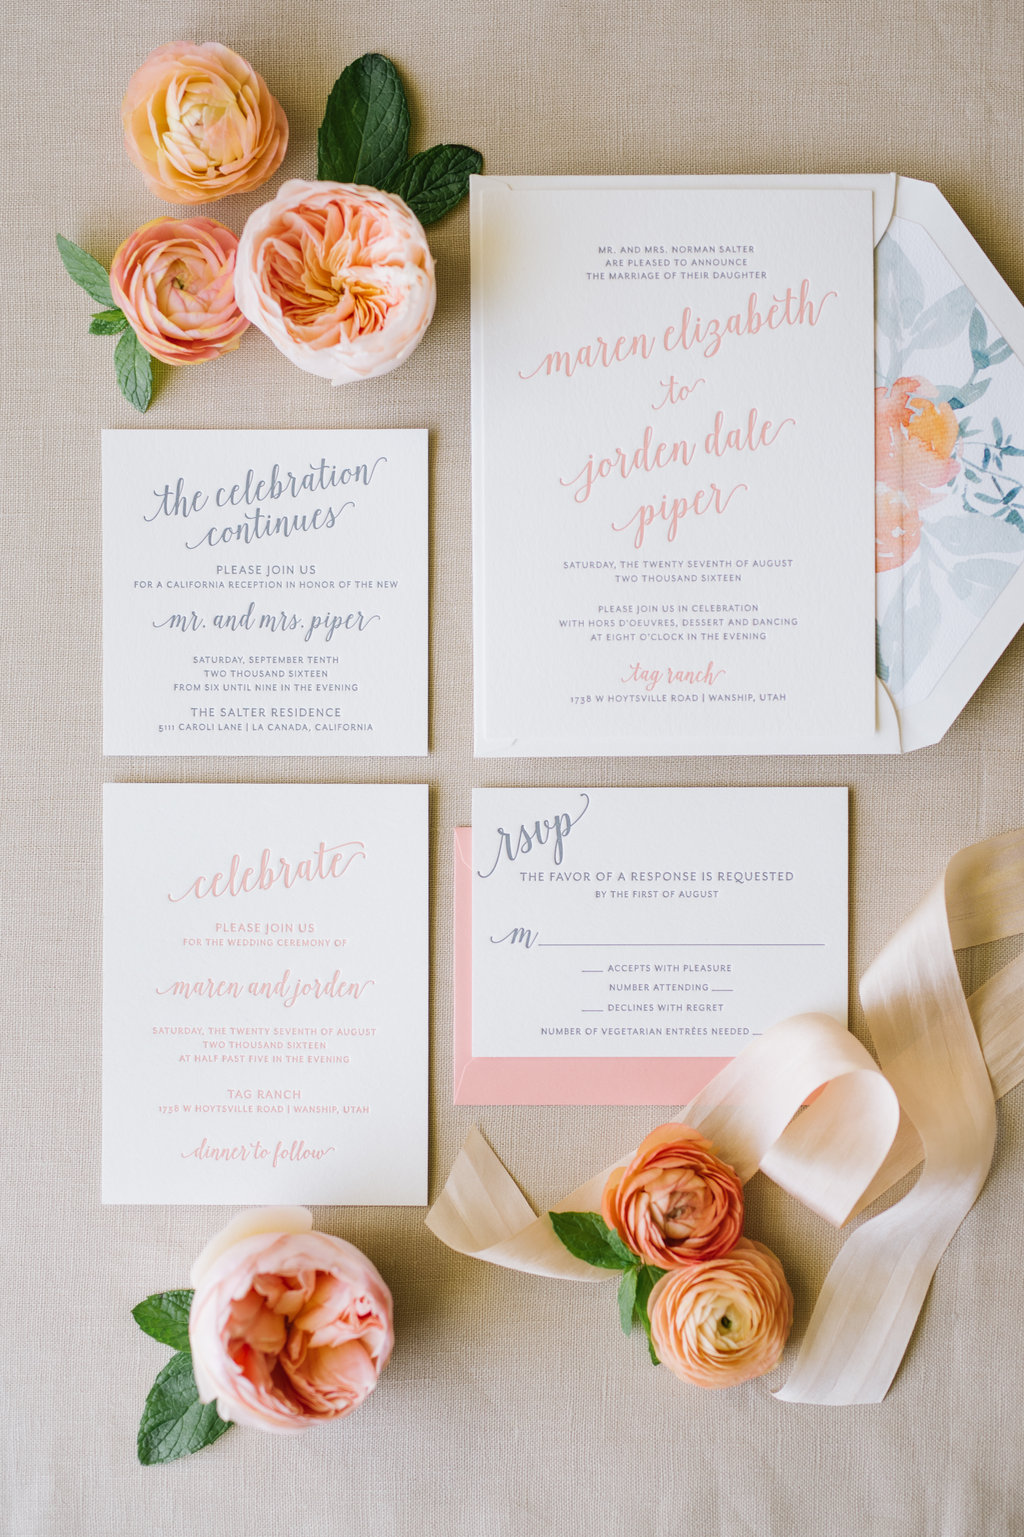 Invitation Wording Guide with Aerialist Press & Foiled Invitations | Letterpress Wedding Invitations | Michelle Leo Events | Utah Event Planner and Designer | Heather Nan Photography